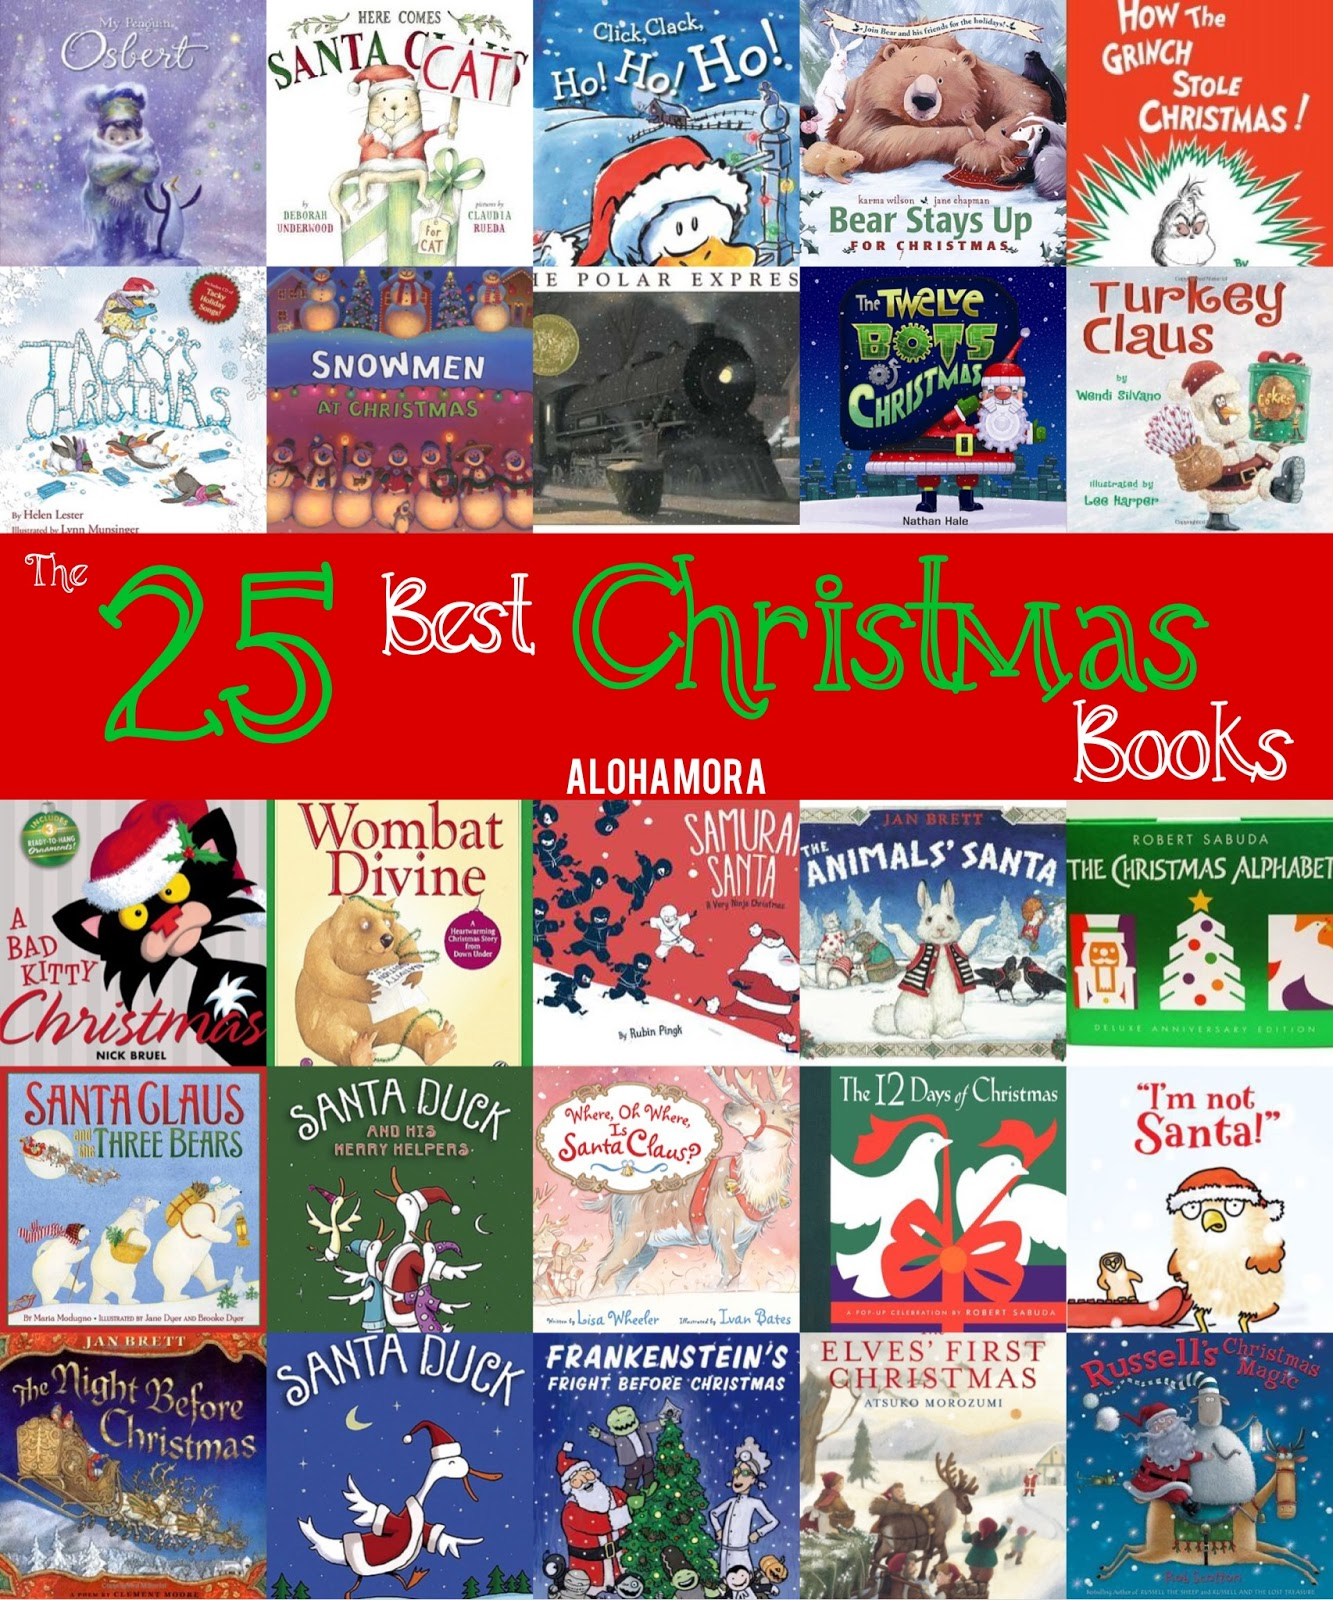 alohamora open a book the 25 best christmas picture books - Best Christmas Books For Kids